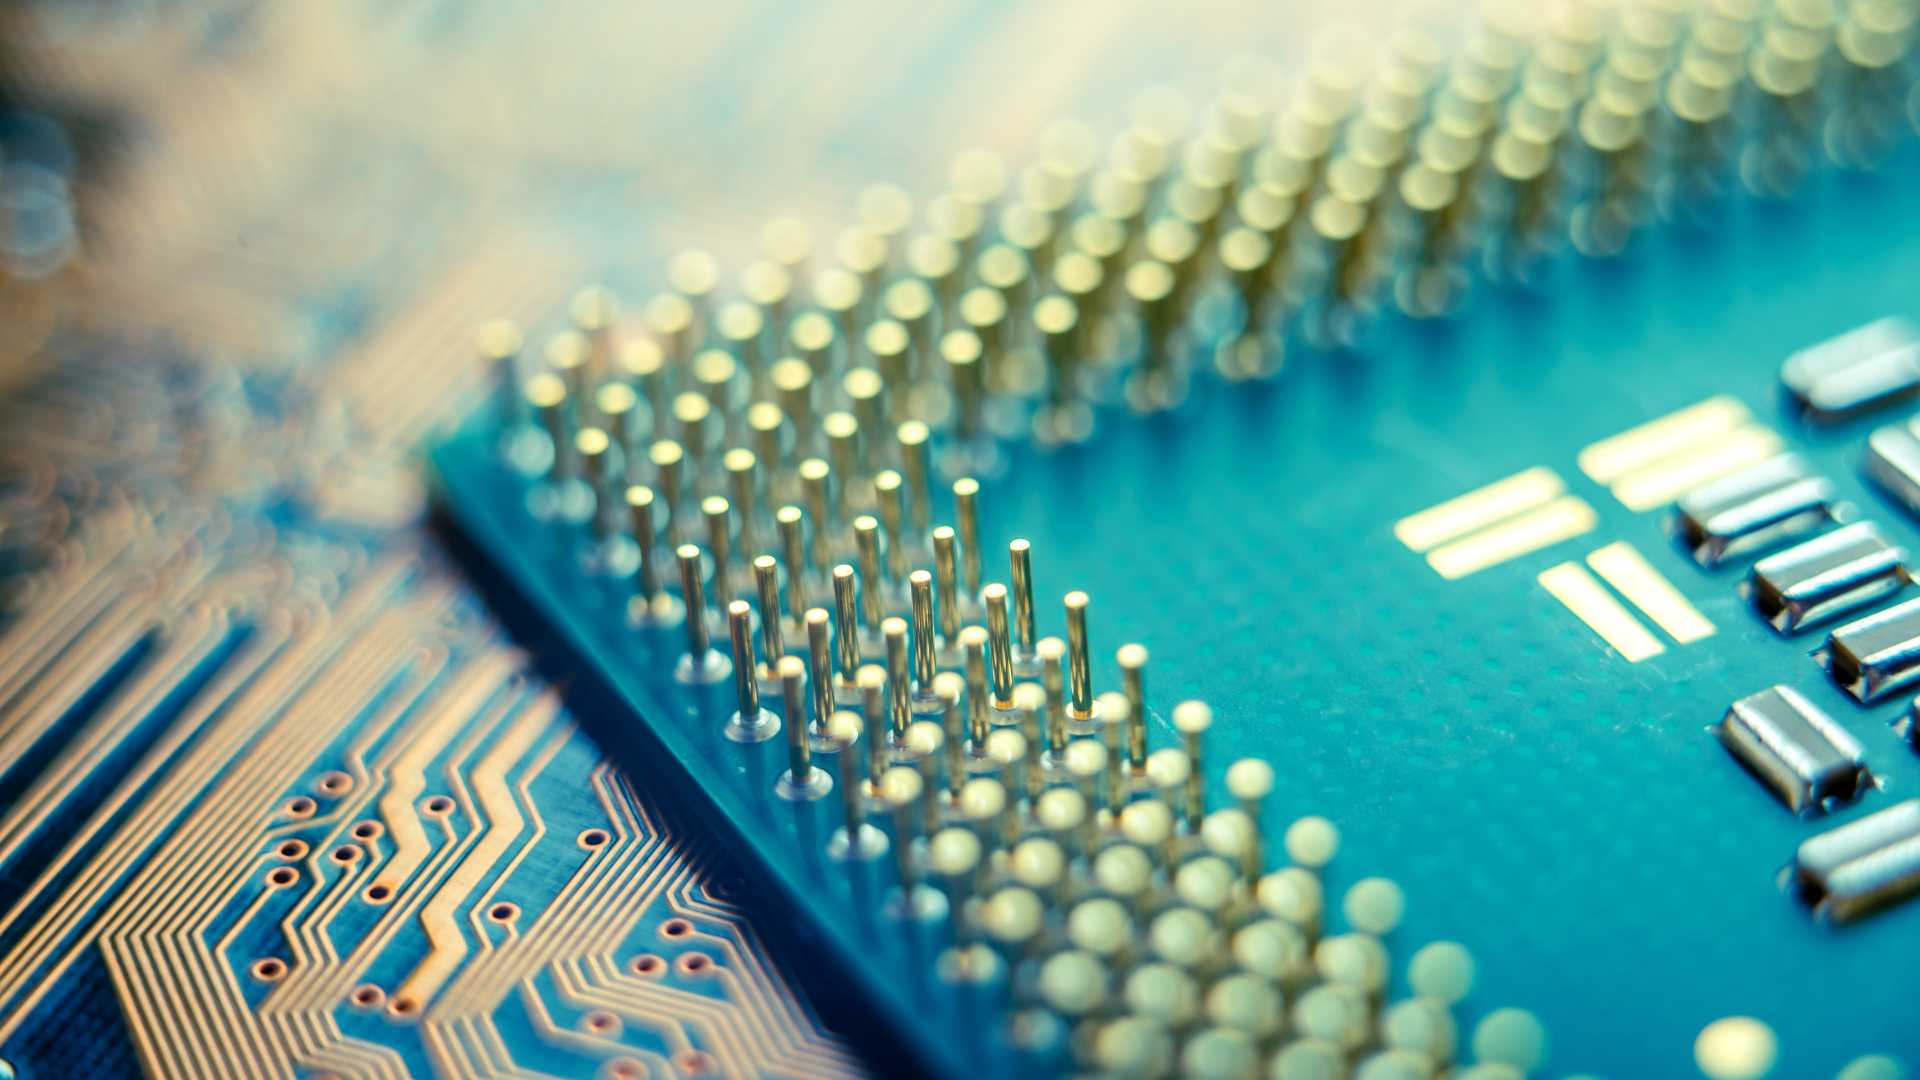 ChinaAMC is listing an ETF that invests in Chinese semiconductor companies